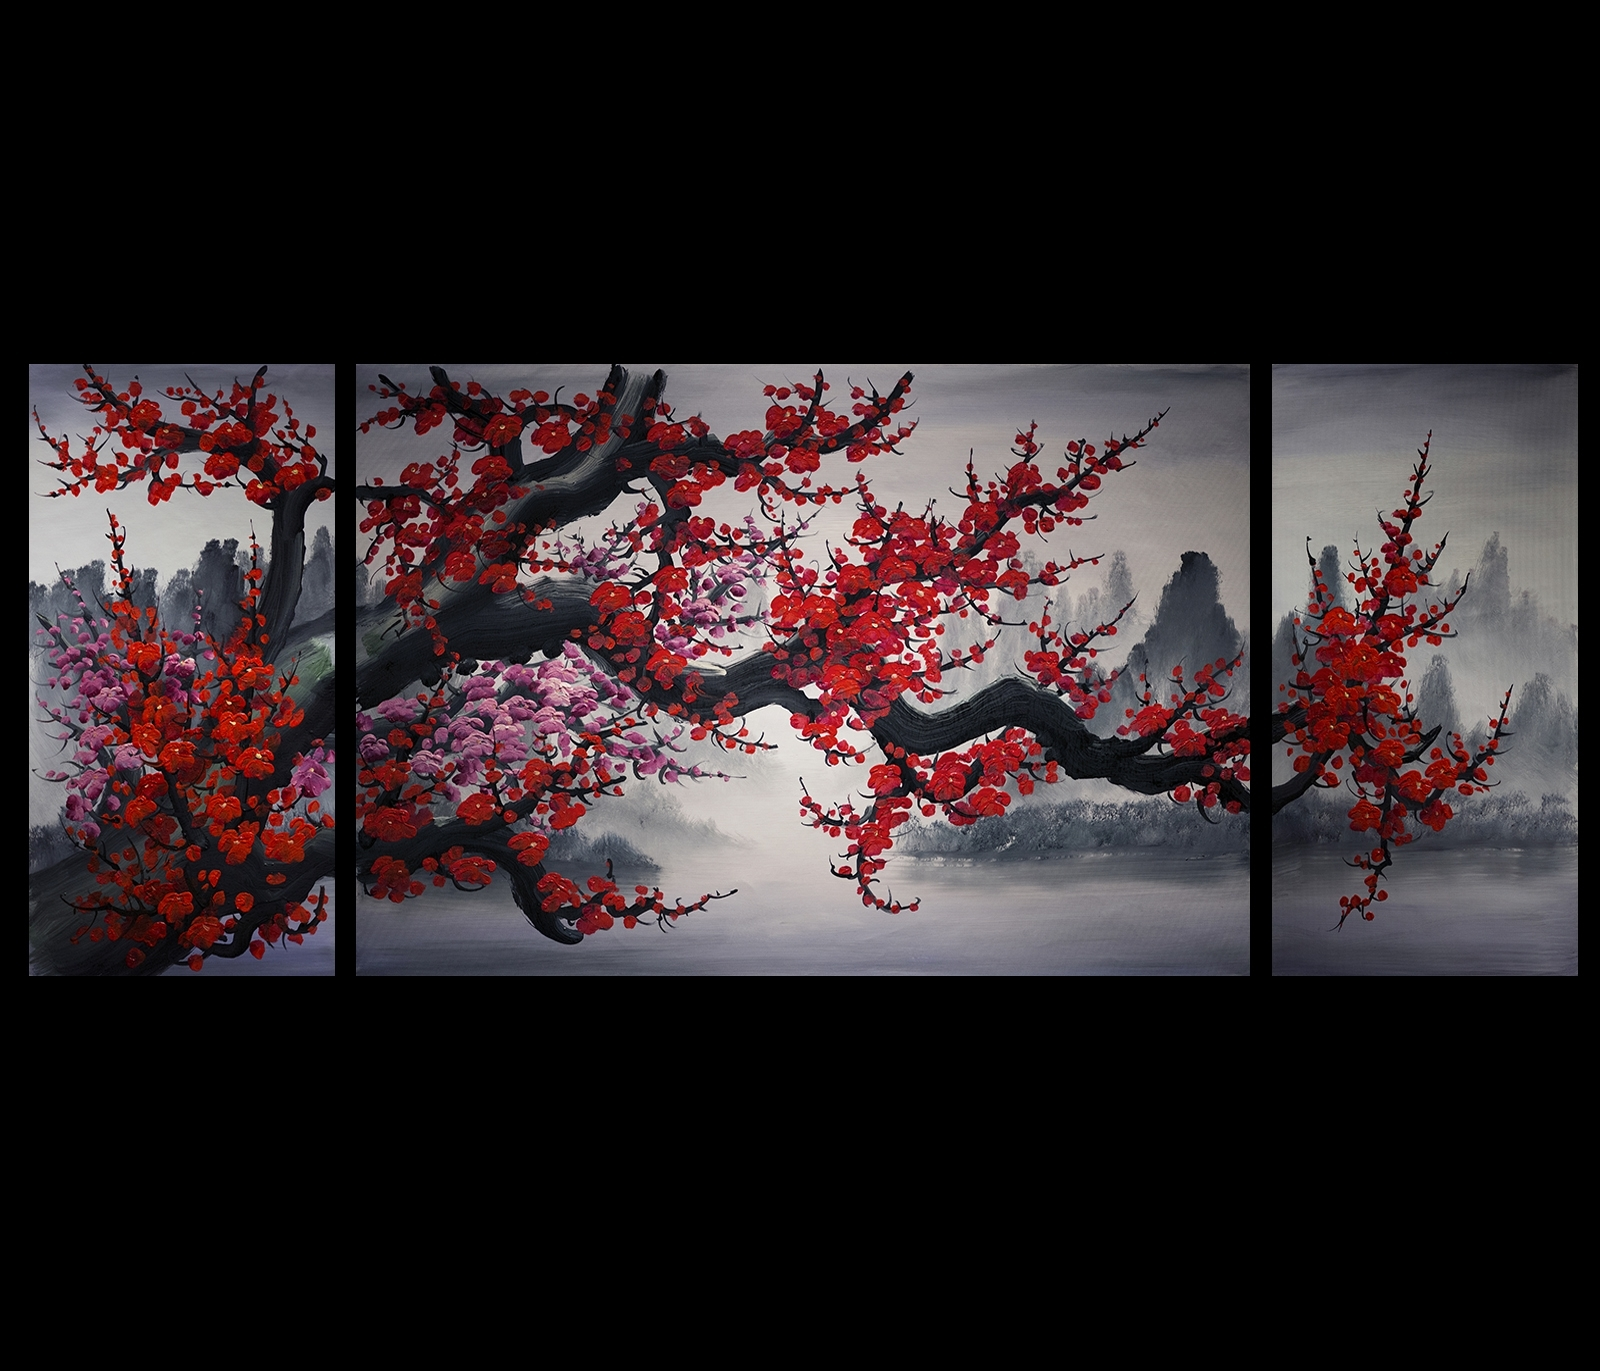 Chinese Wall Art Painting Download Chinese Wall Art | V-Sanctuary pertaining to Chinese Wall Art (Image 10 of 20)